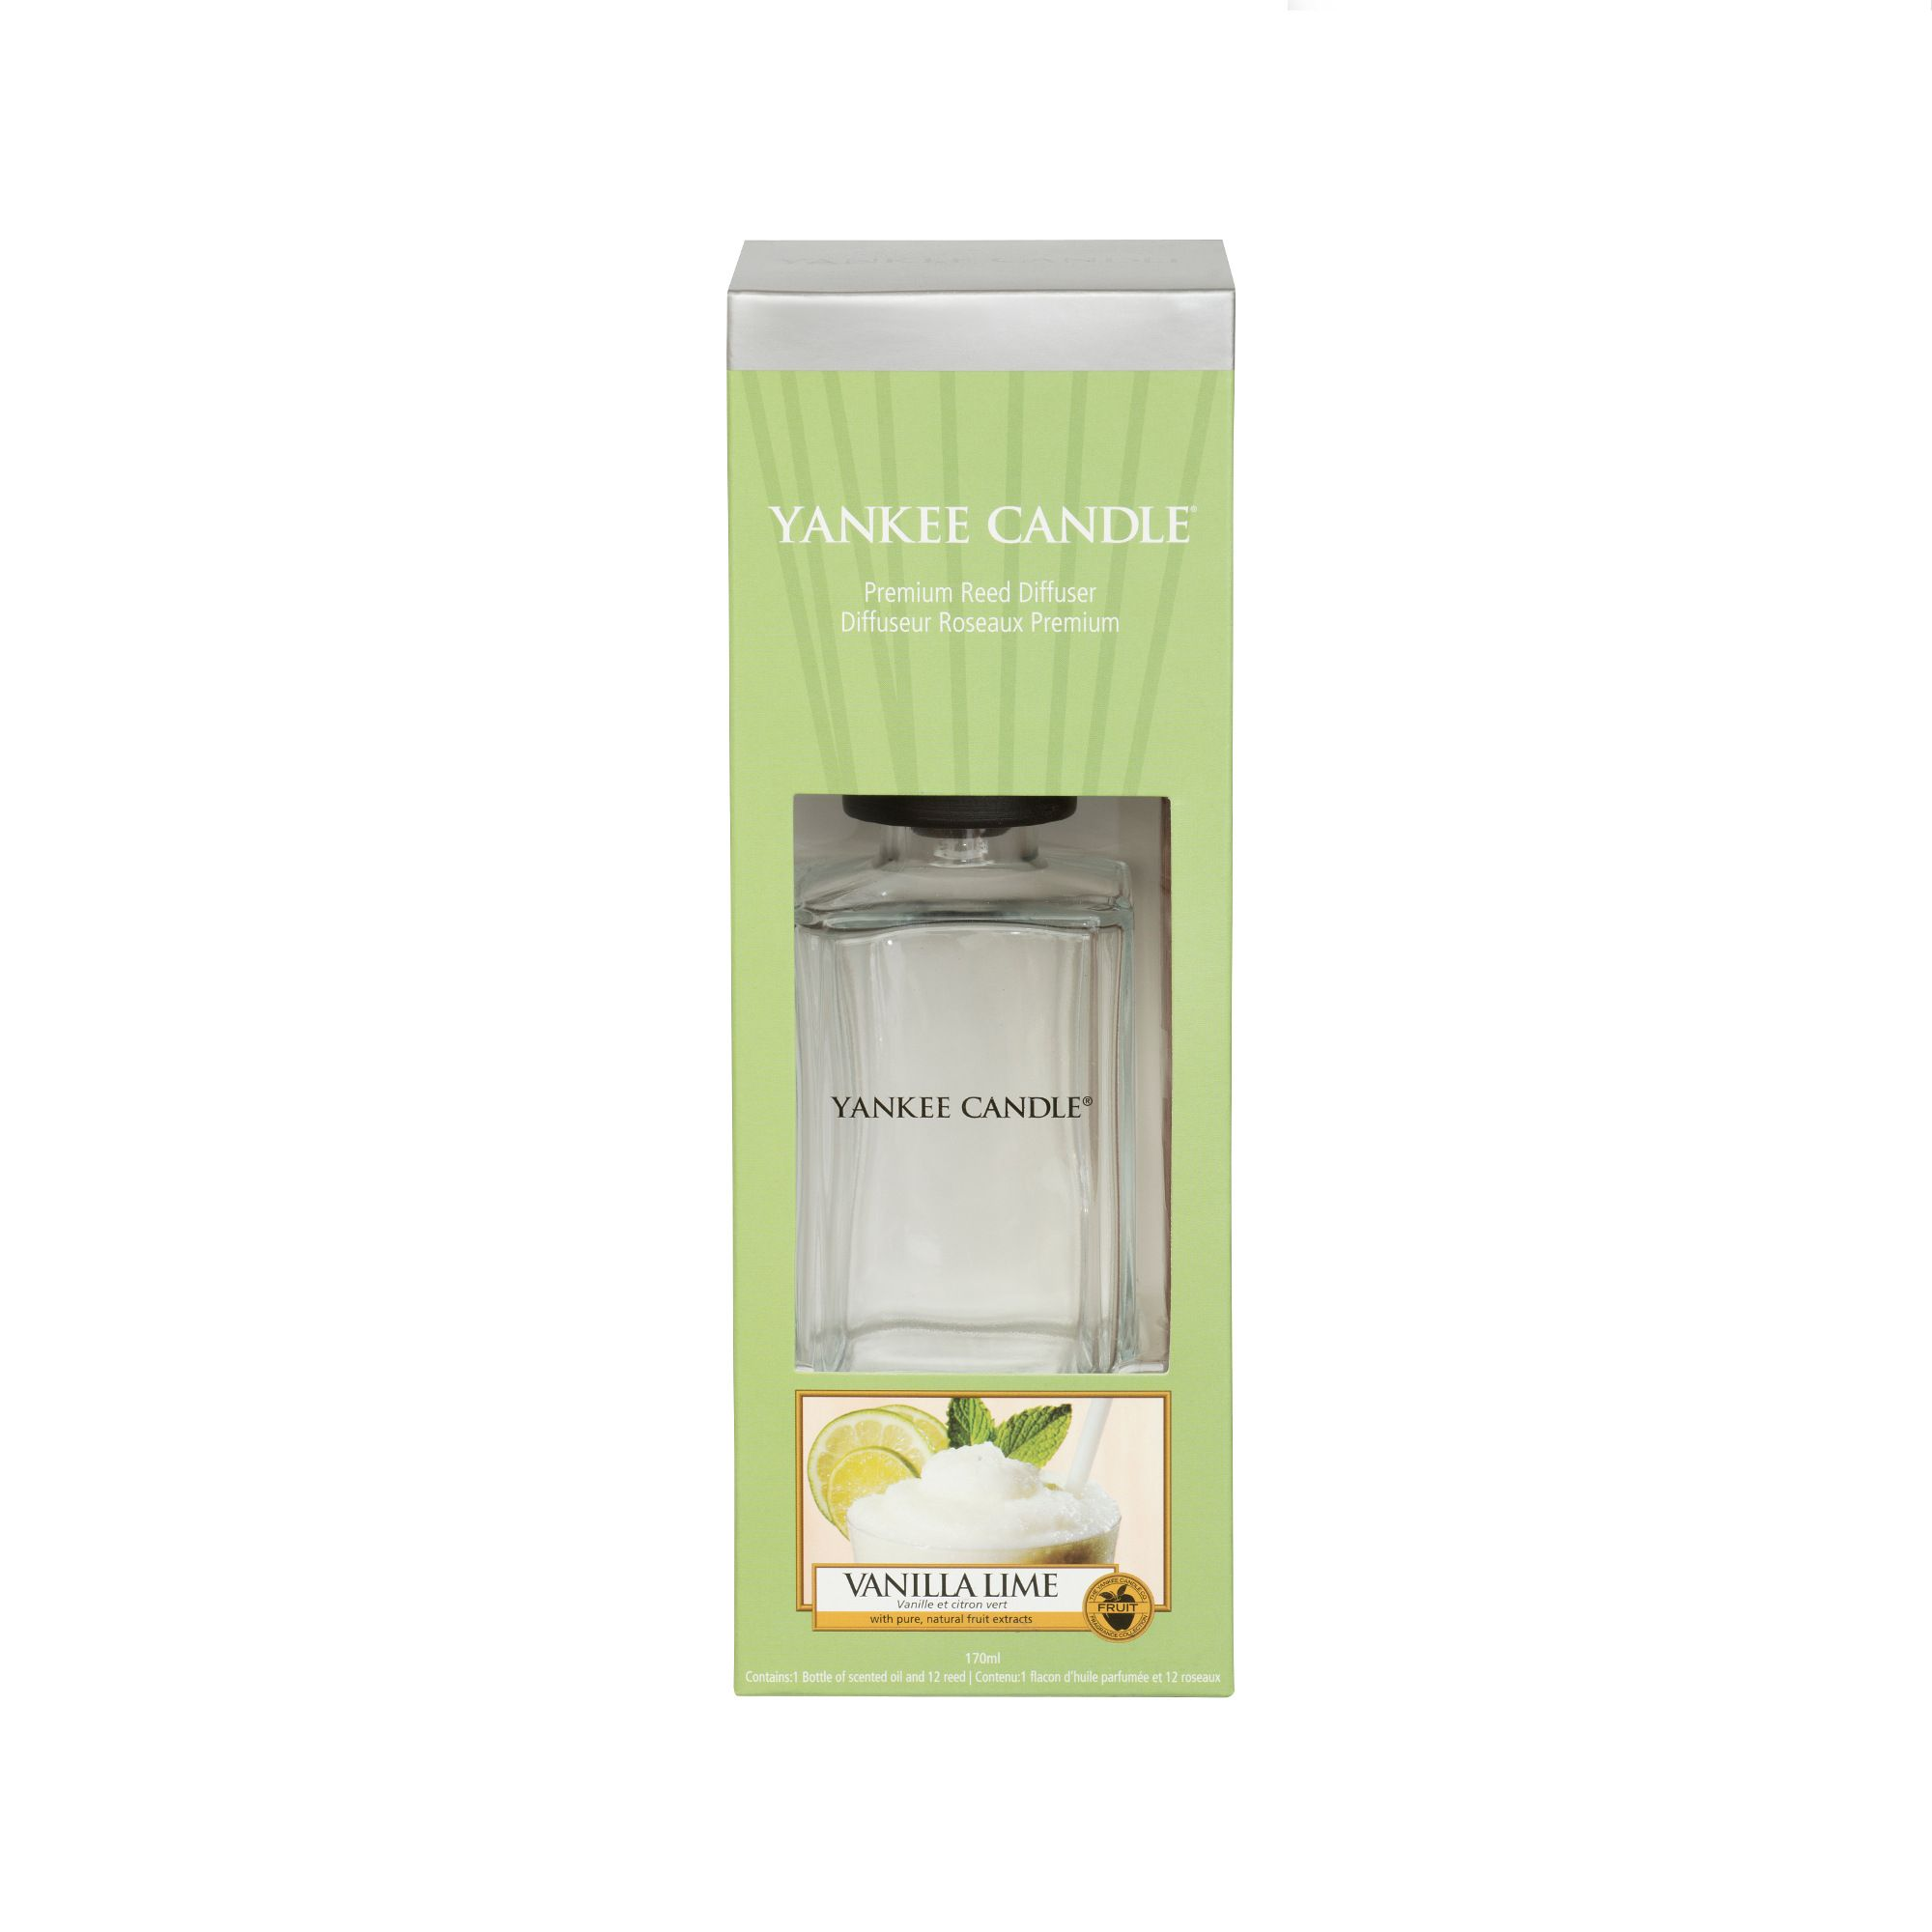 Yankee Candle Vanilla Lime Decor Reeds